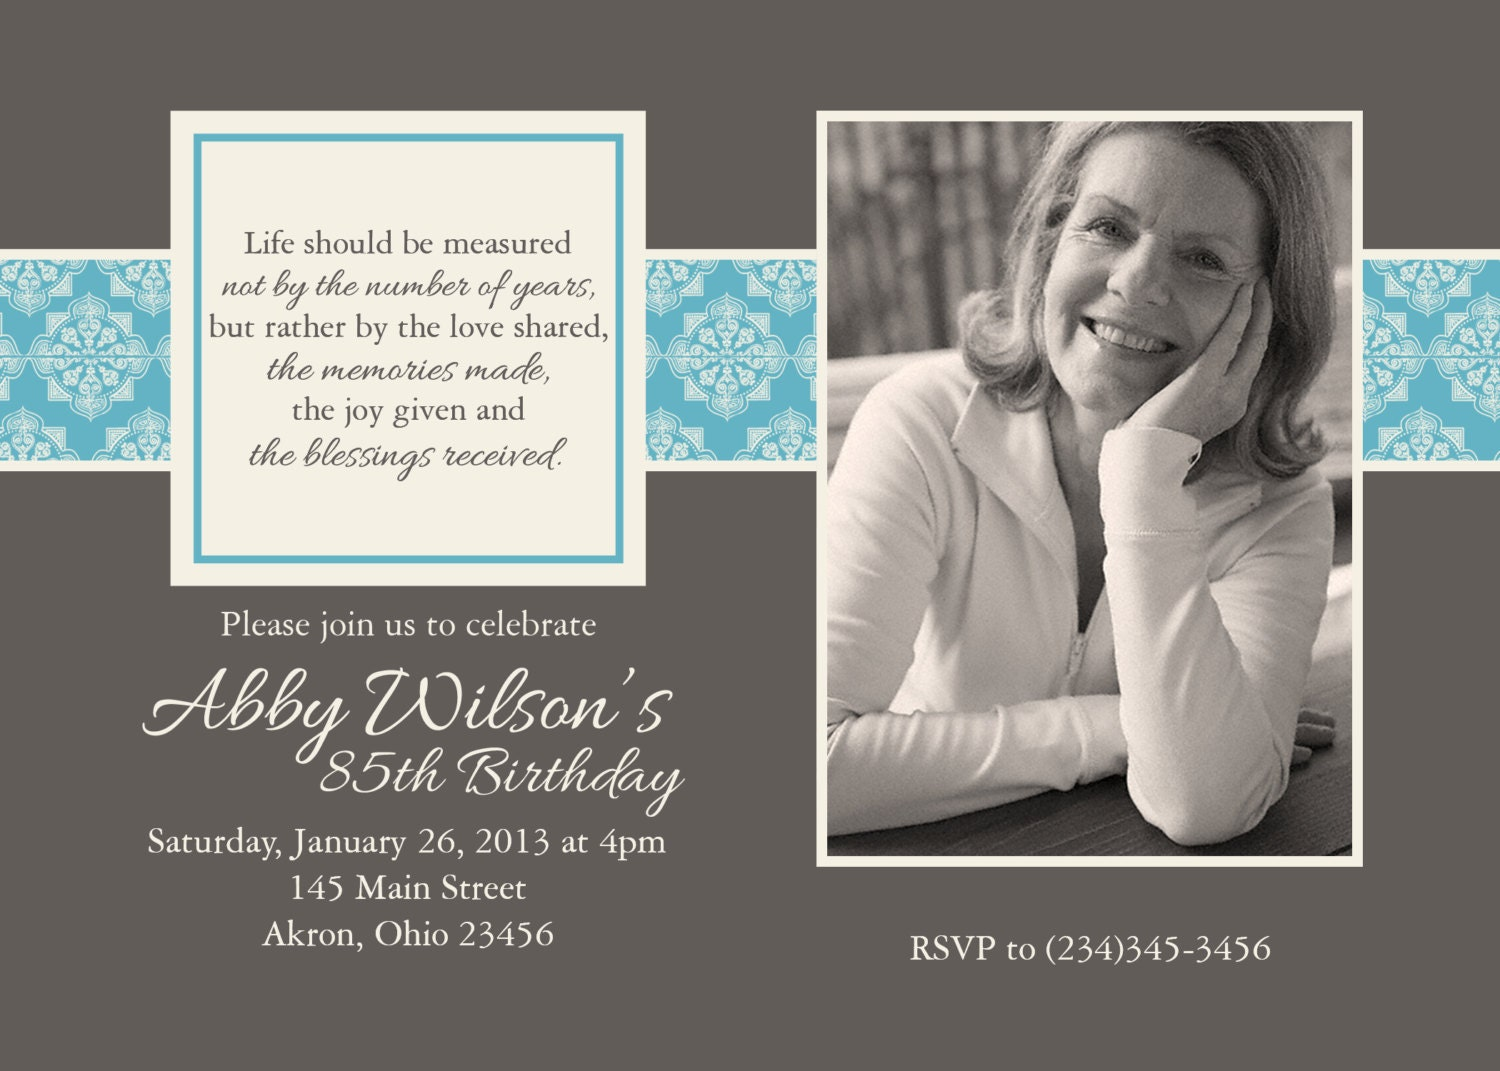 90Th Birthday Invitation is an amazing ideas you had to choose for invitation design